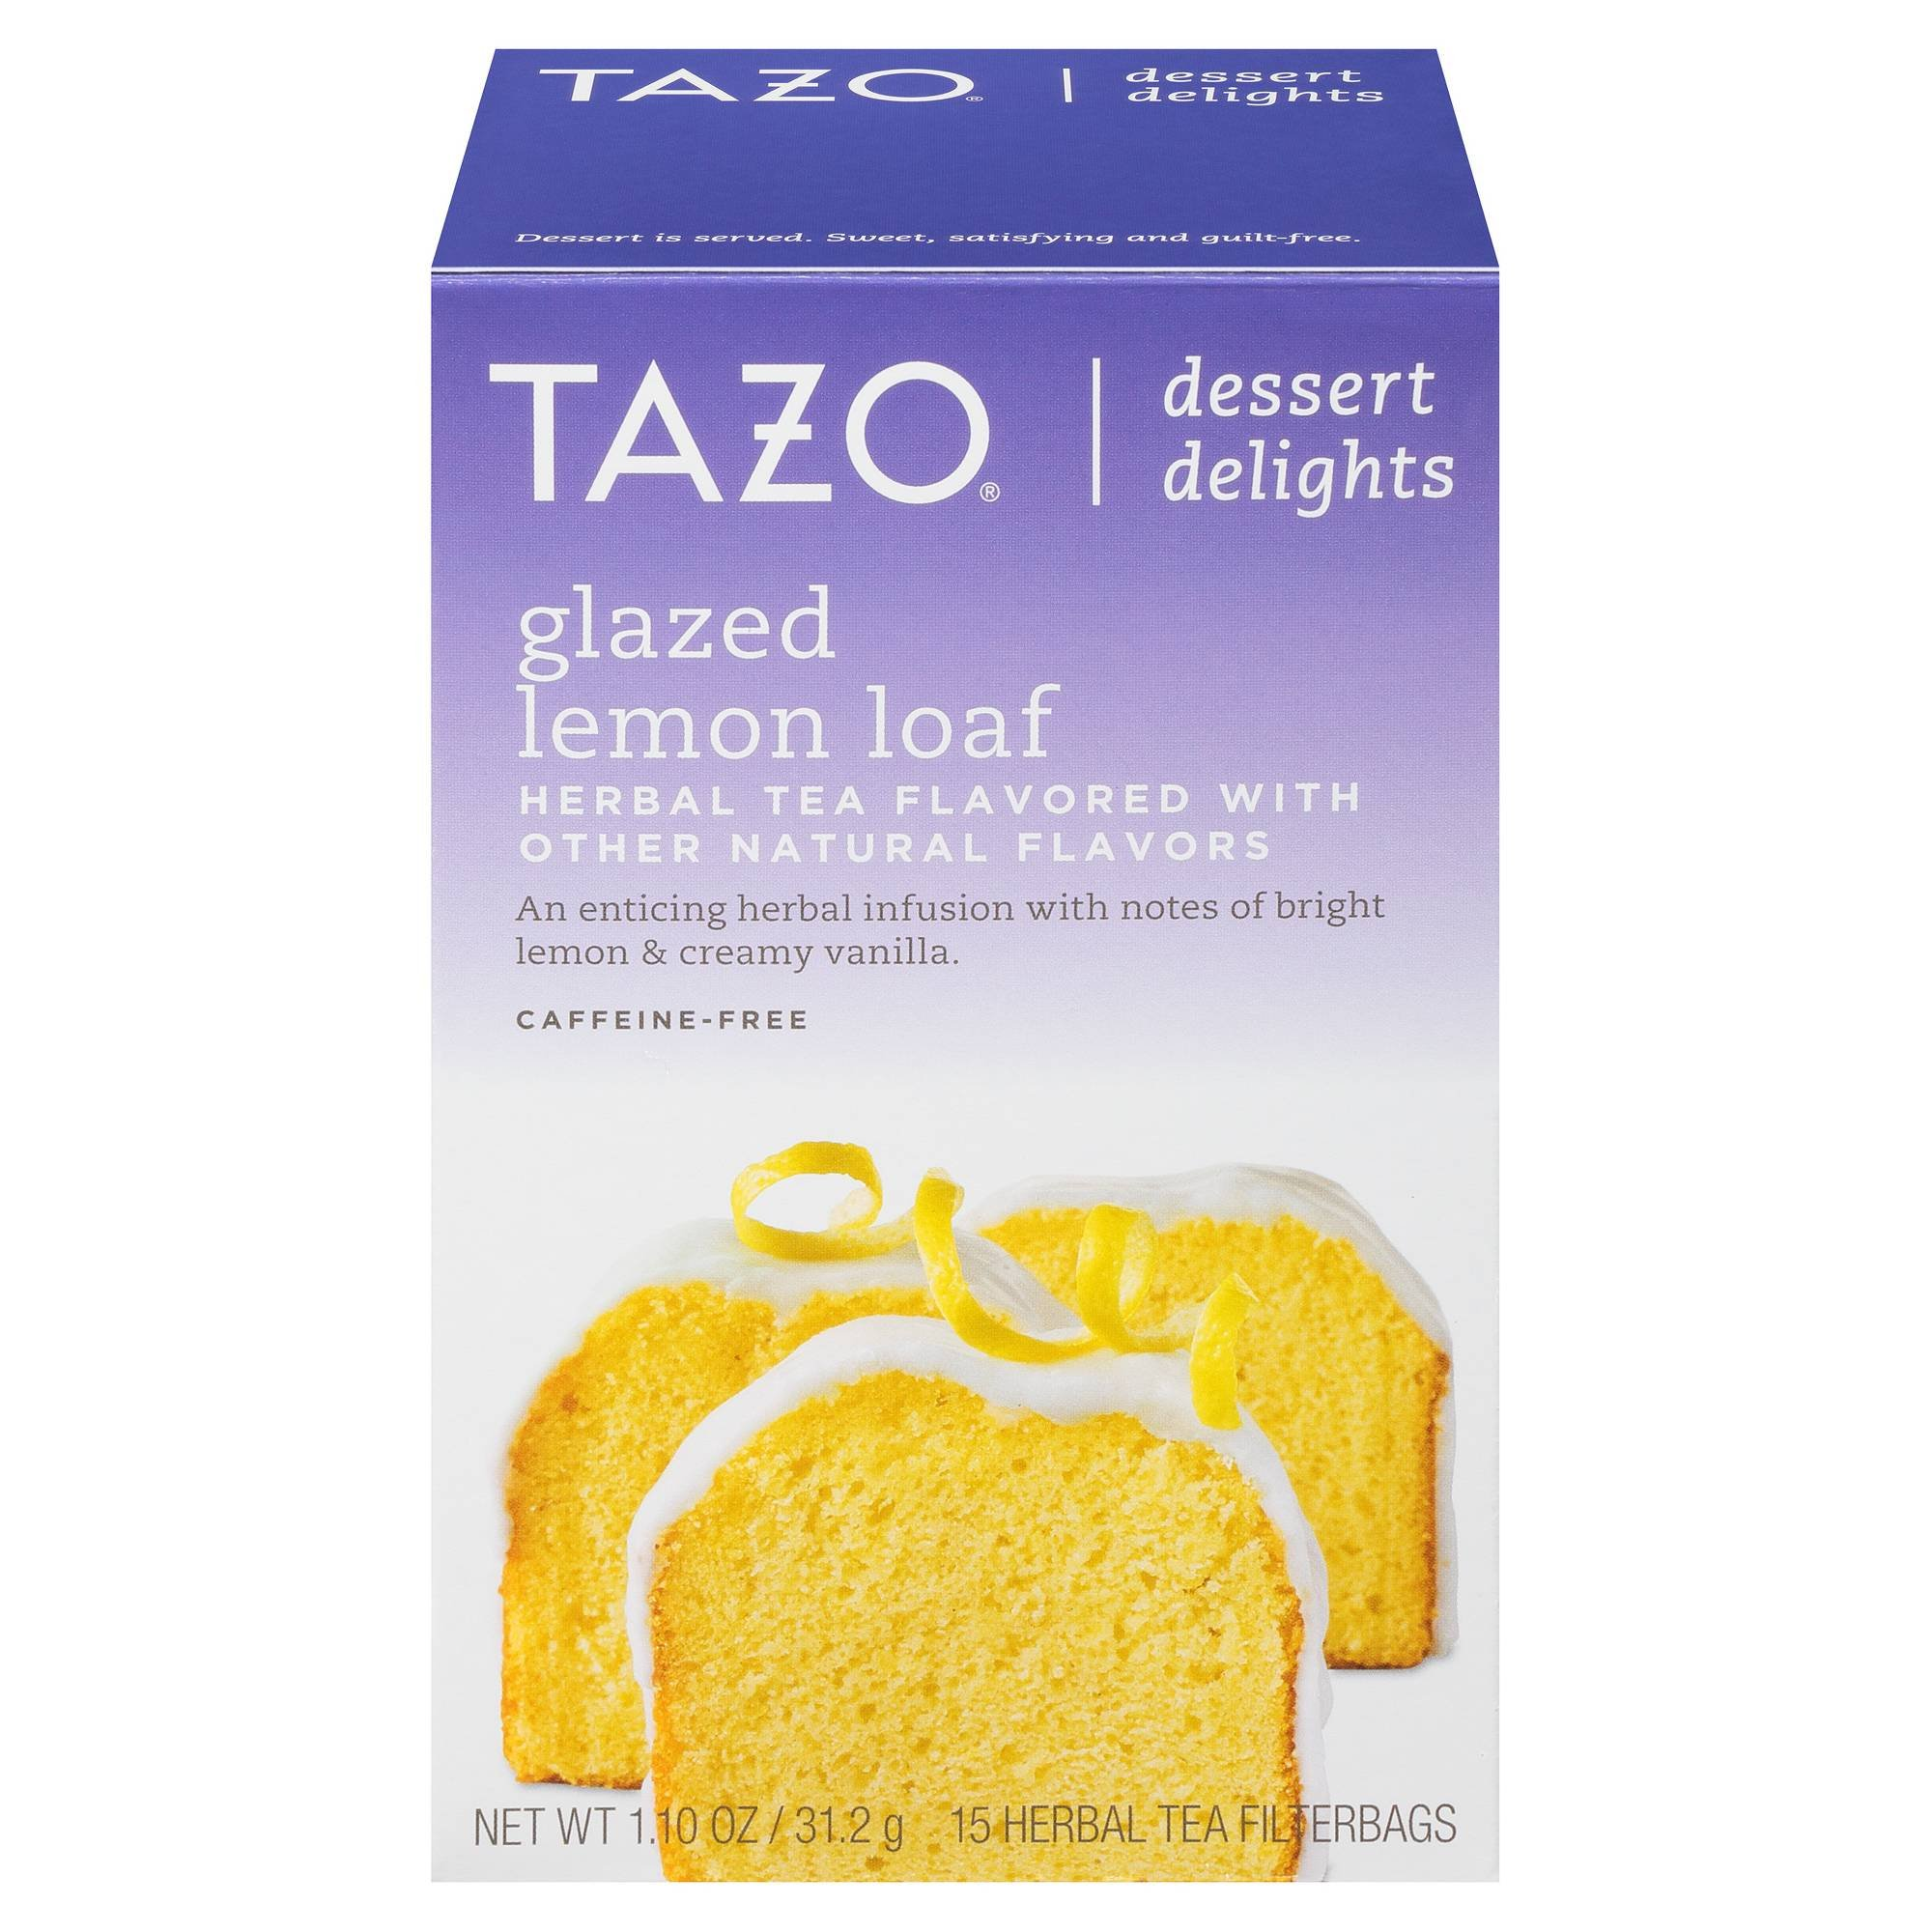 Tazo Glazed Lemon Loaf Dessert Delights Tea Bags 15c Black Tea filterbags, total 1.10 oz , pack of 1